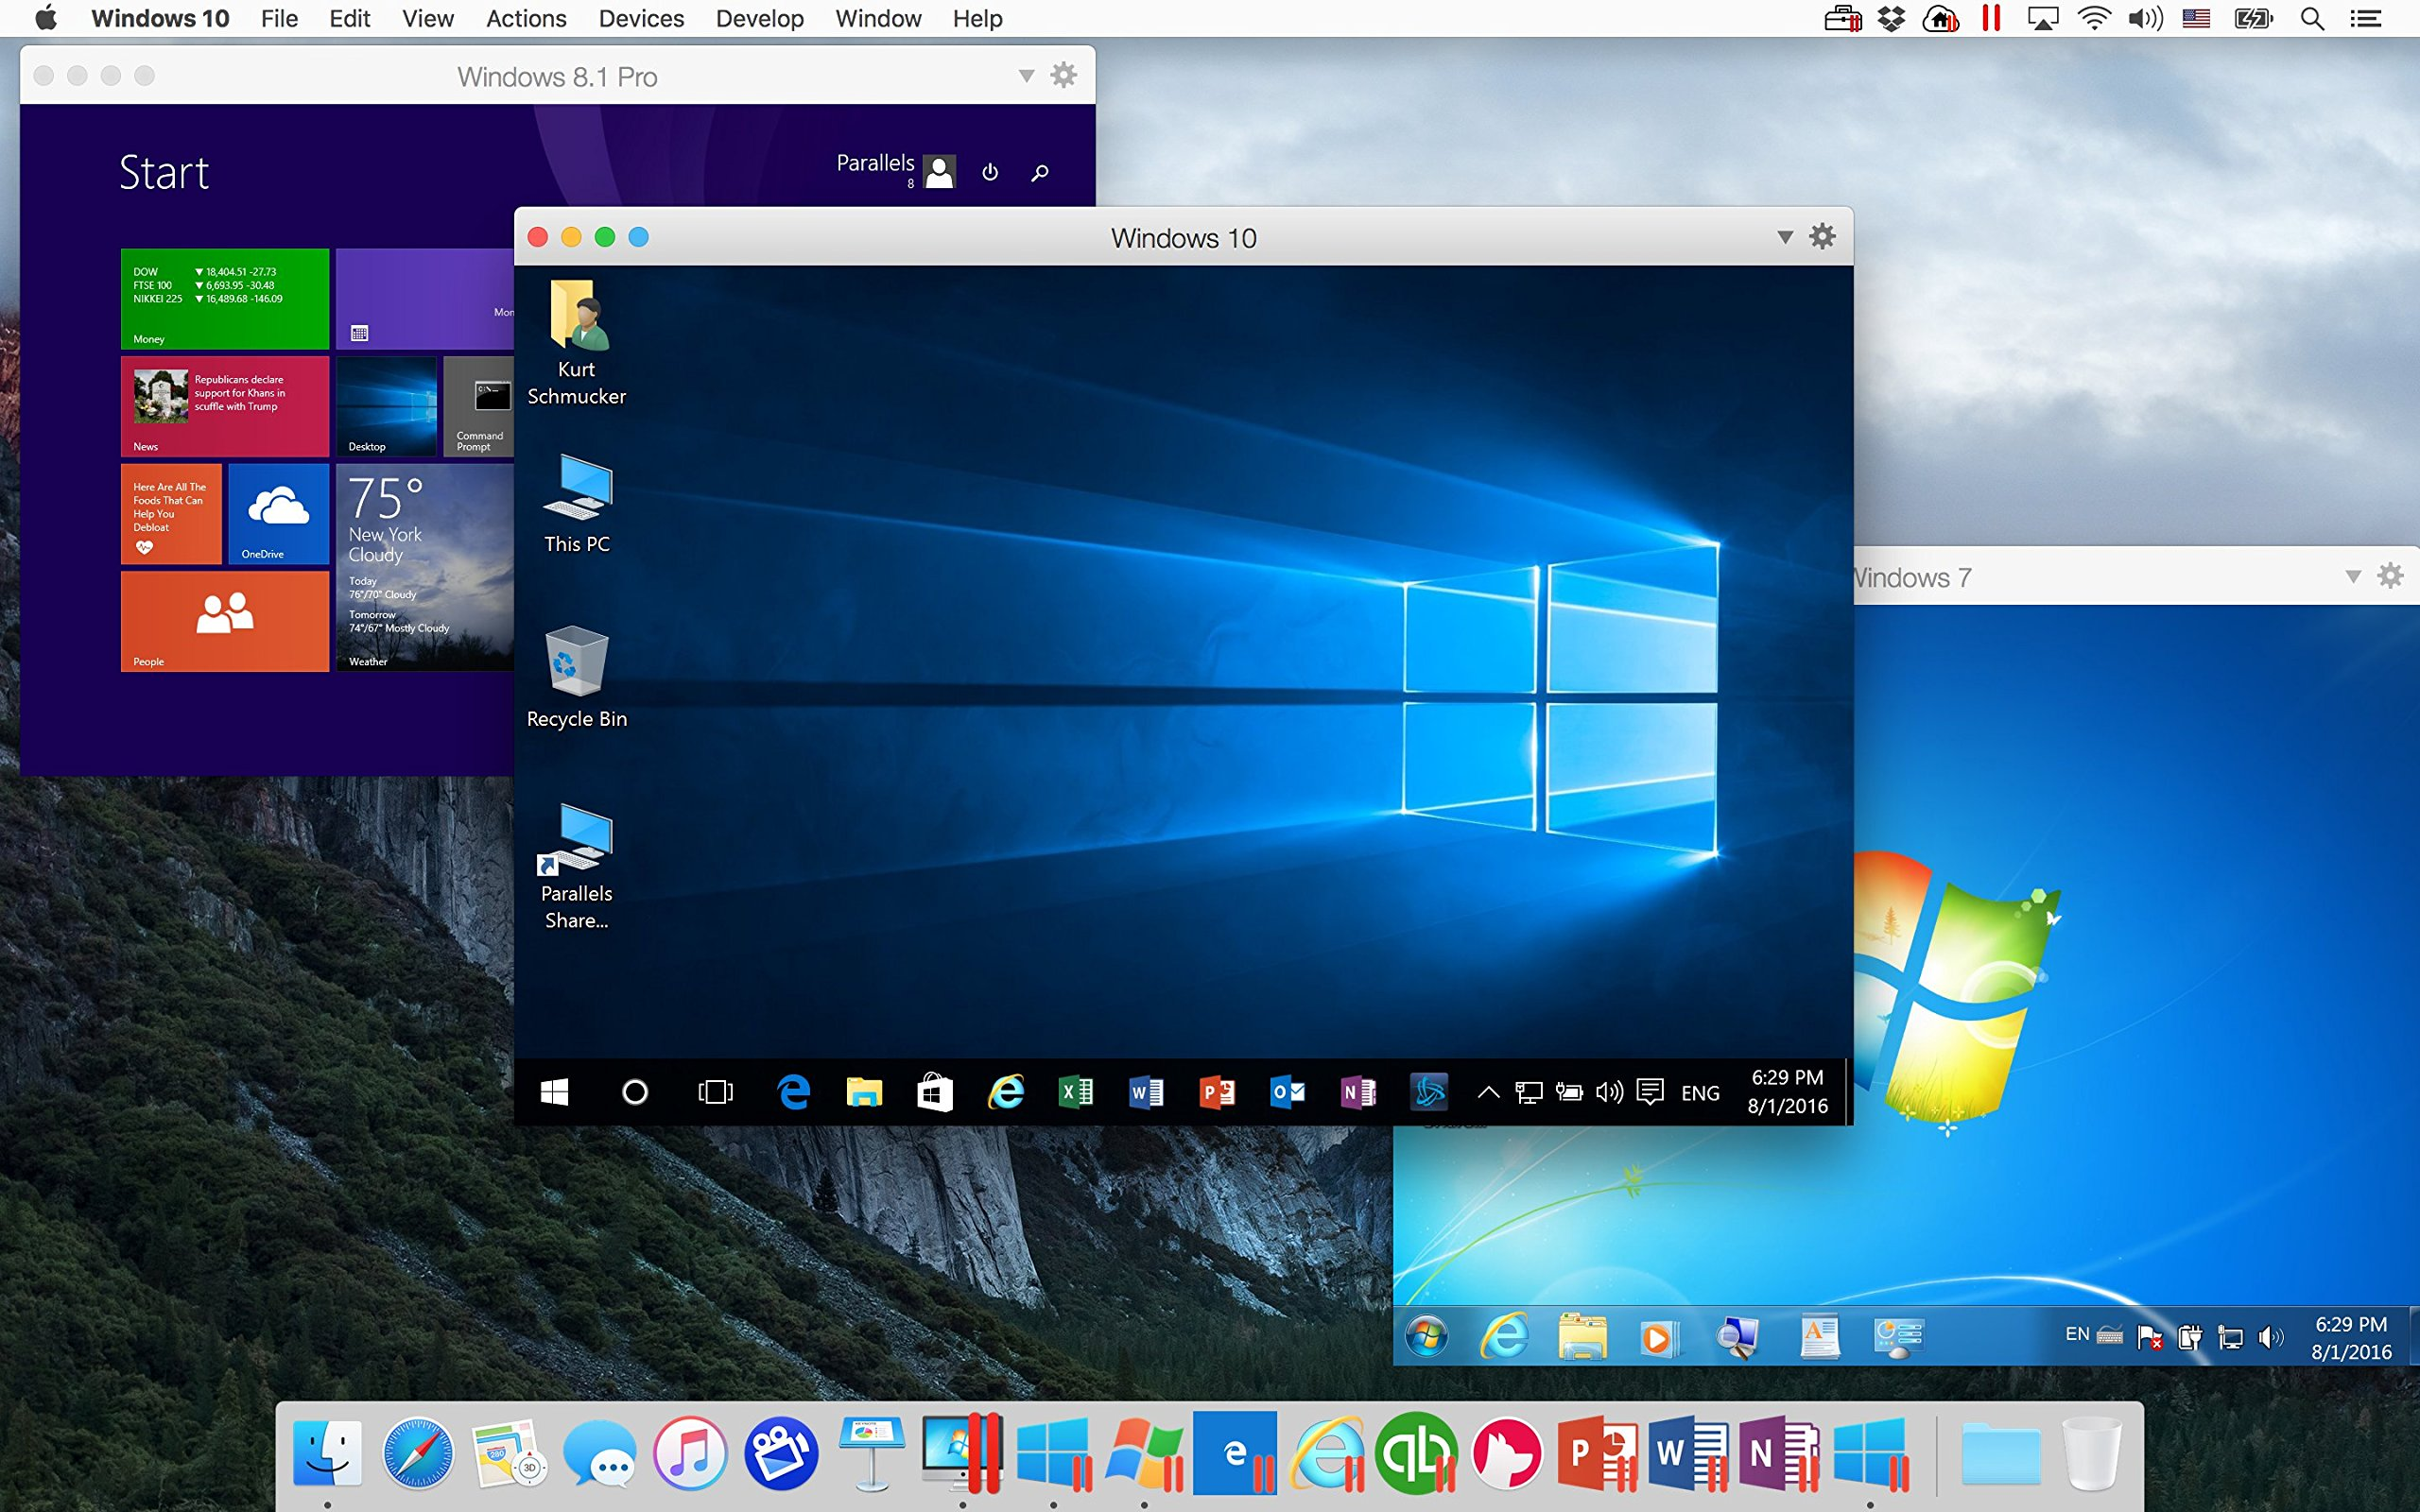 Parallels Desktop 12 for Mac by Parallels Software